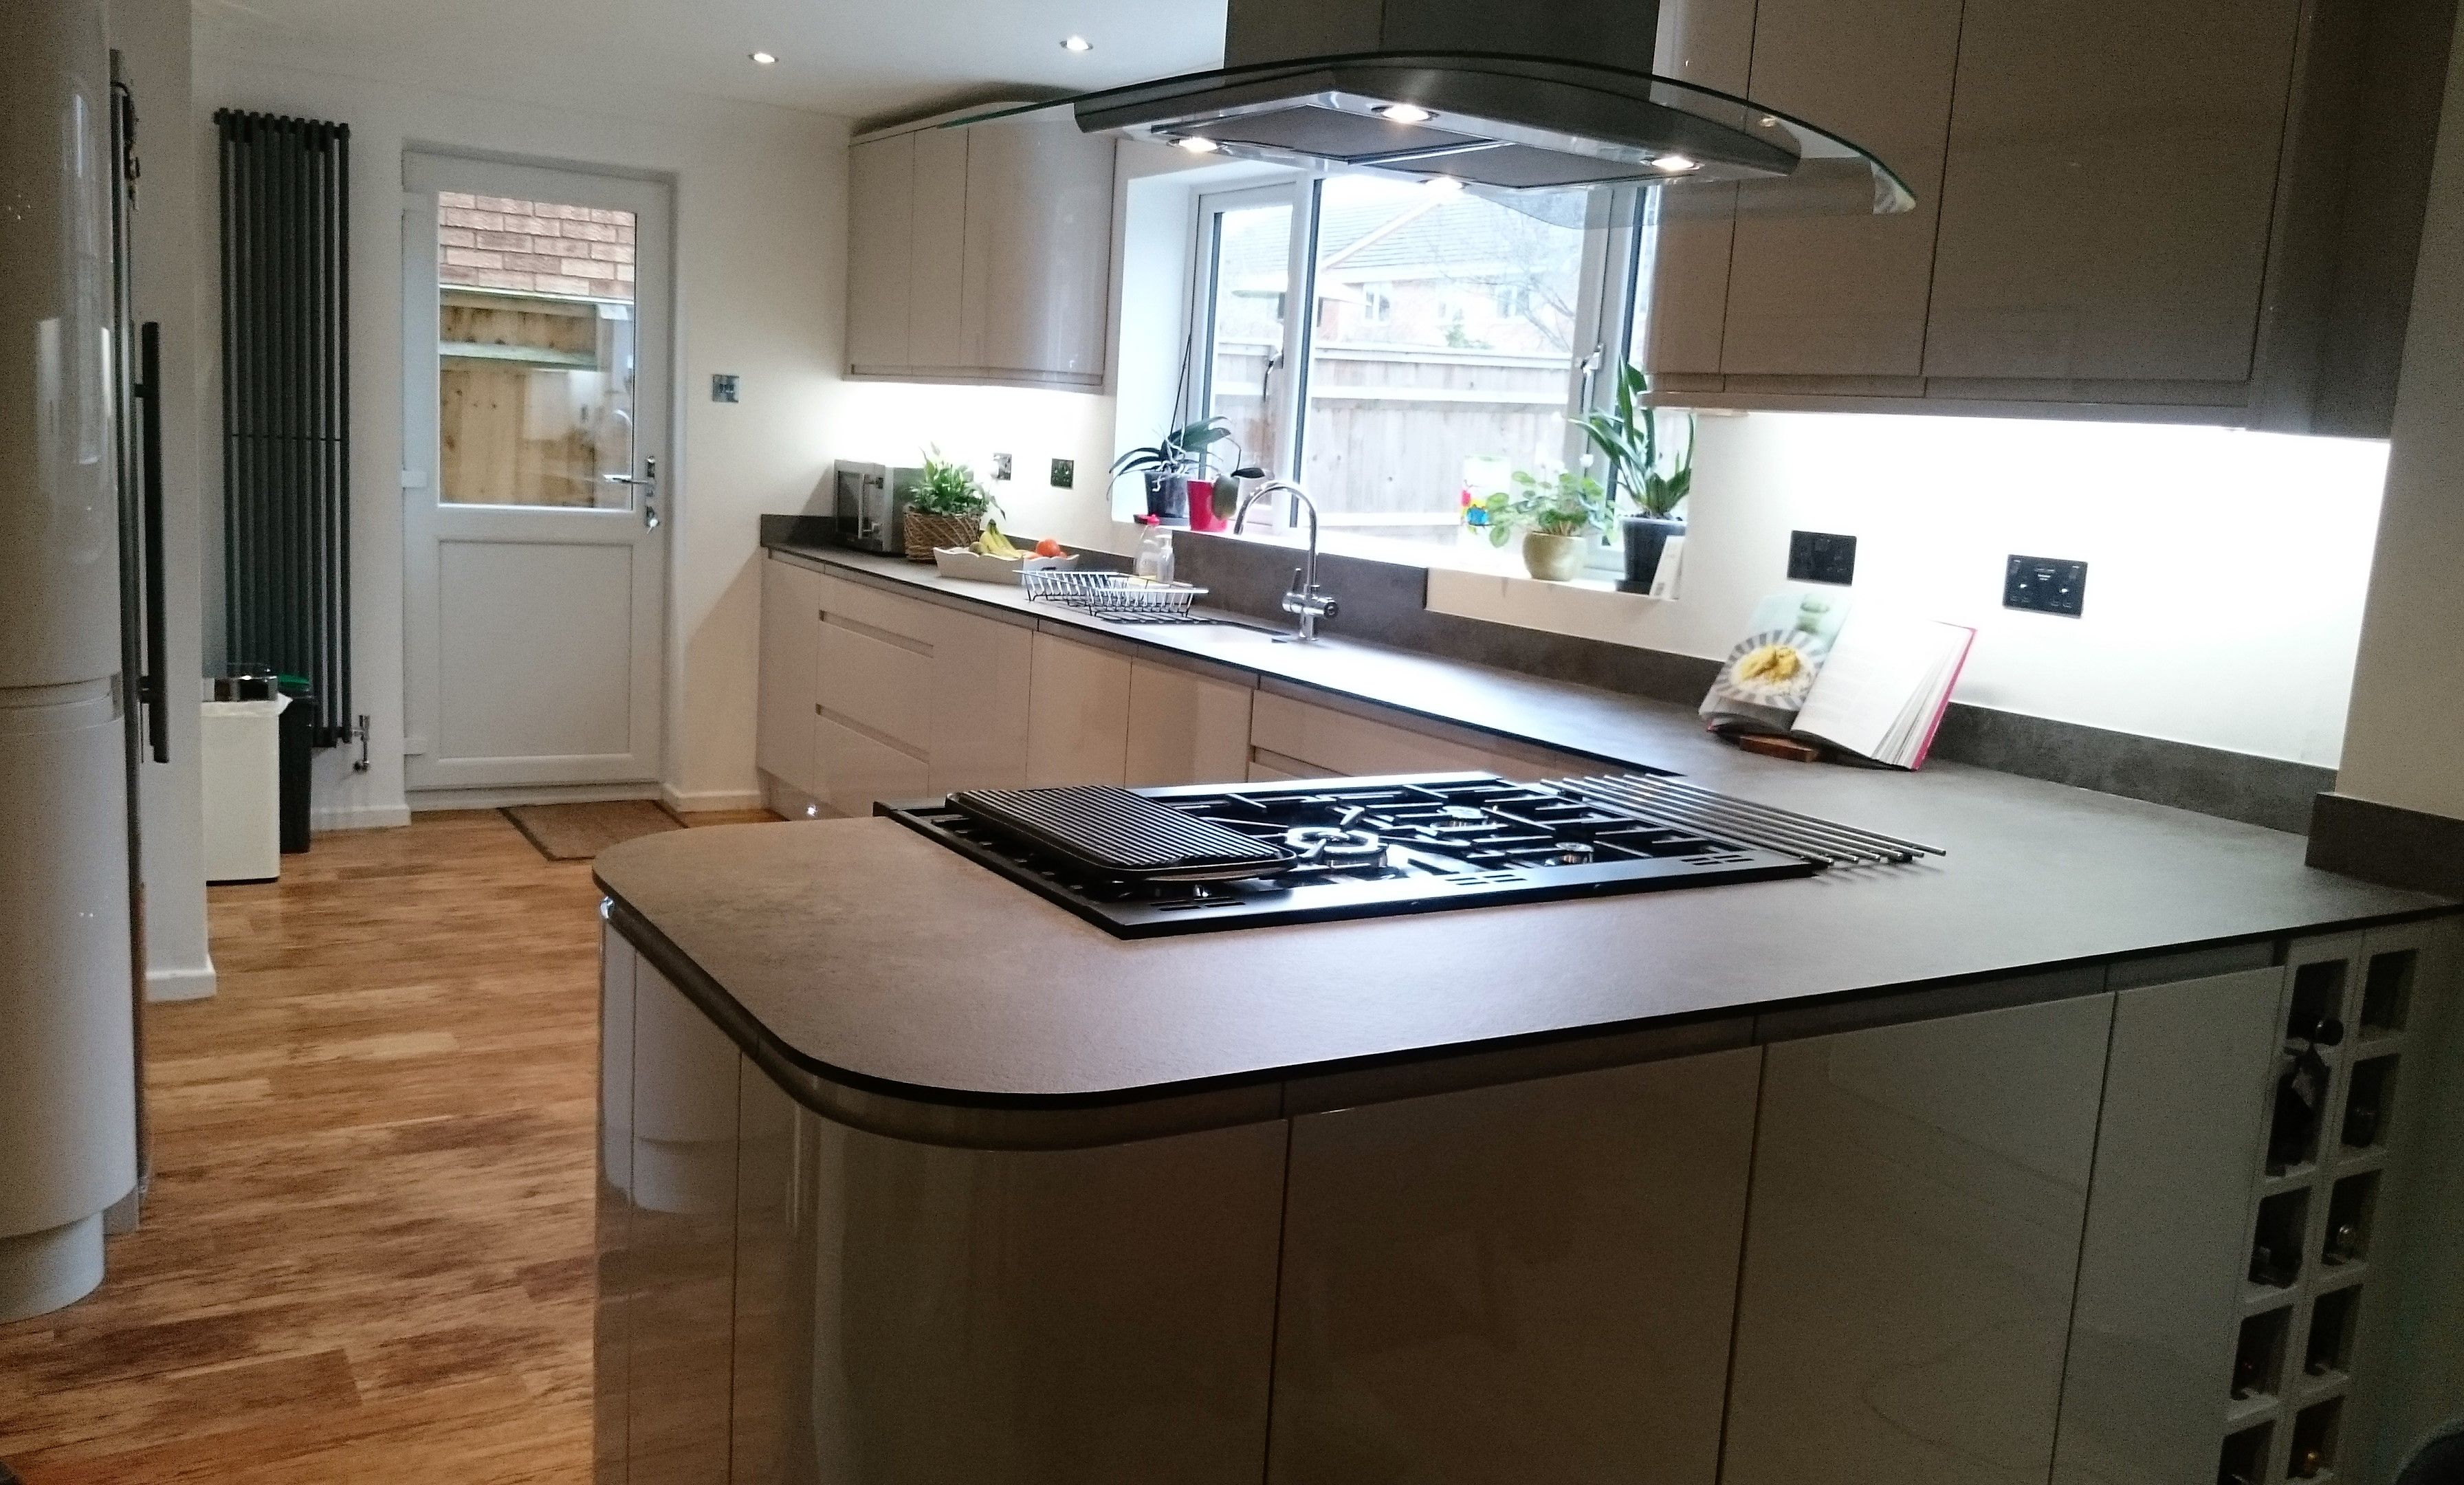 Lana turner vasiliou is a kitchen bathroom design consultant at wickes one of her favourite for Kitchen bathroom design consultant